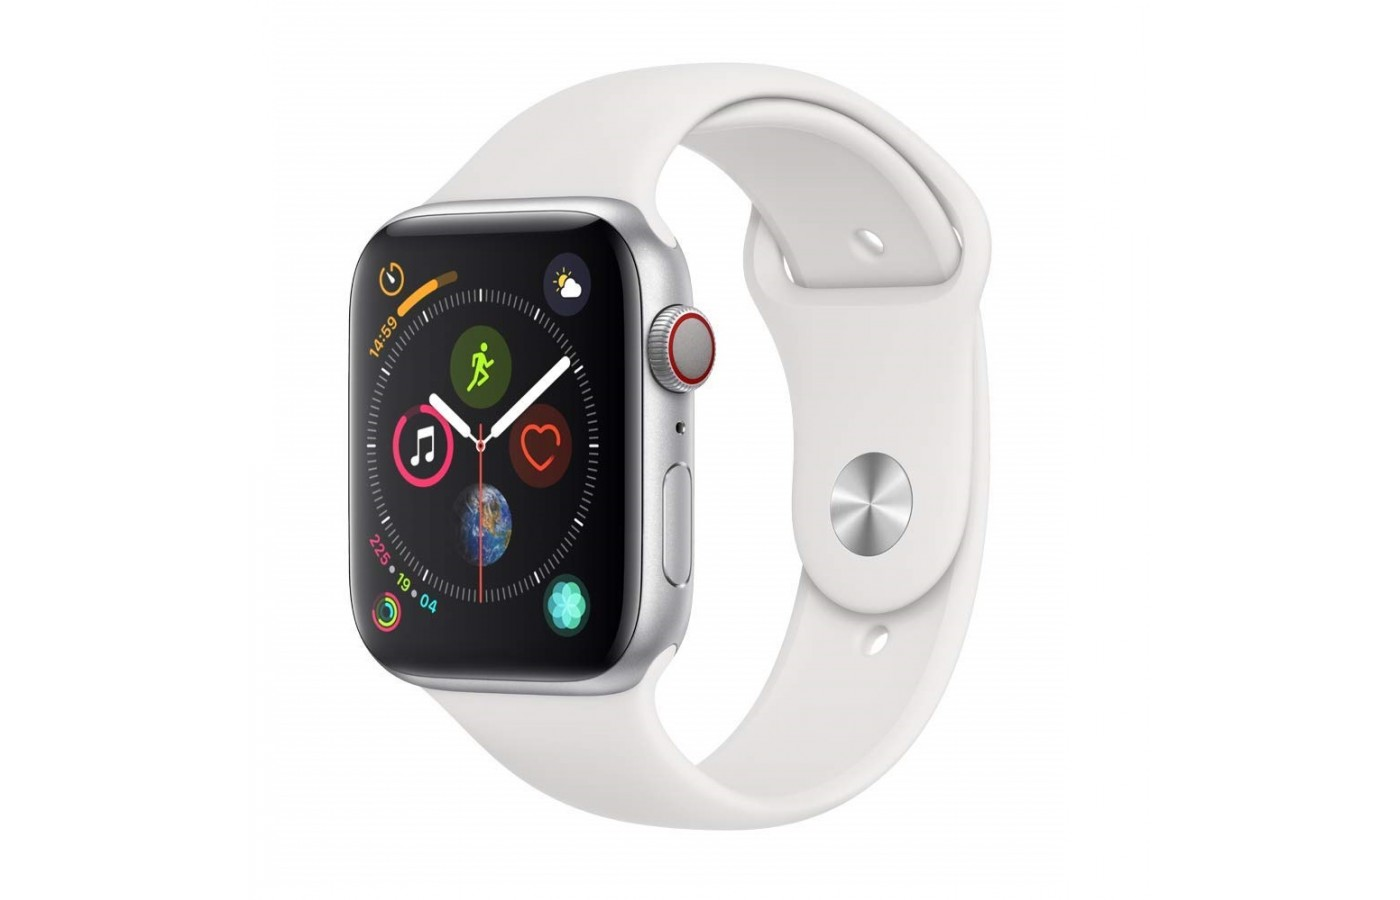 The Apple Watch Series 4 comes in different colors and styles in order to suit individual styles and preferences.